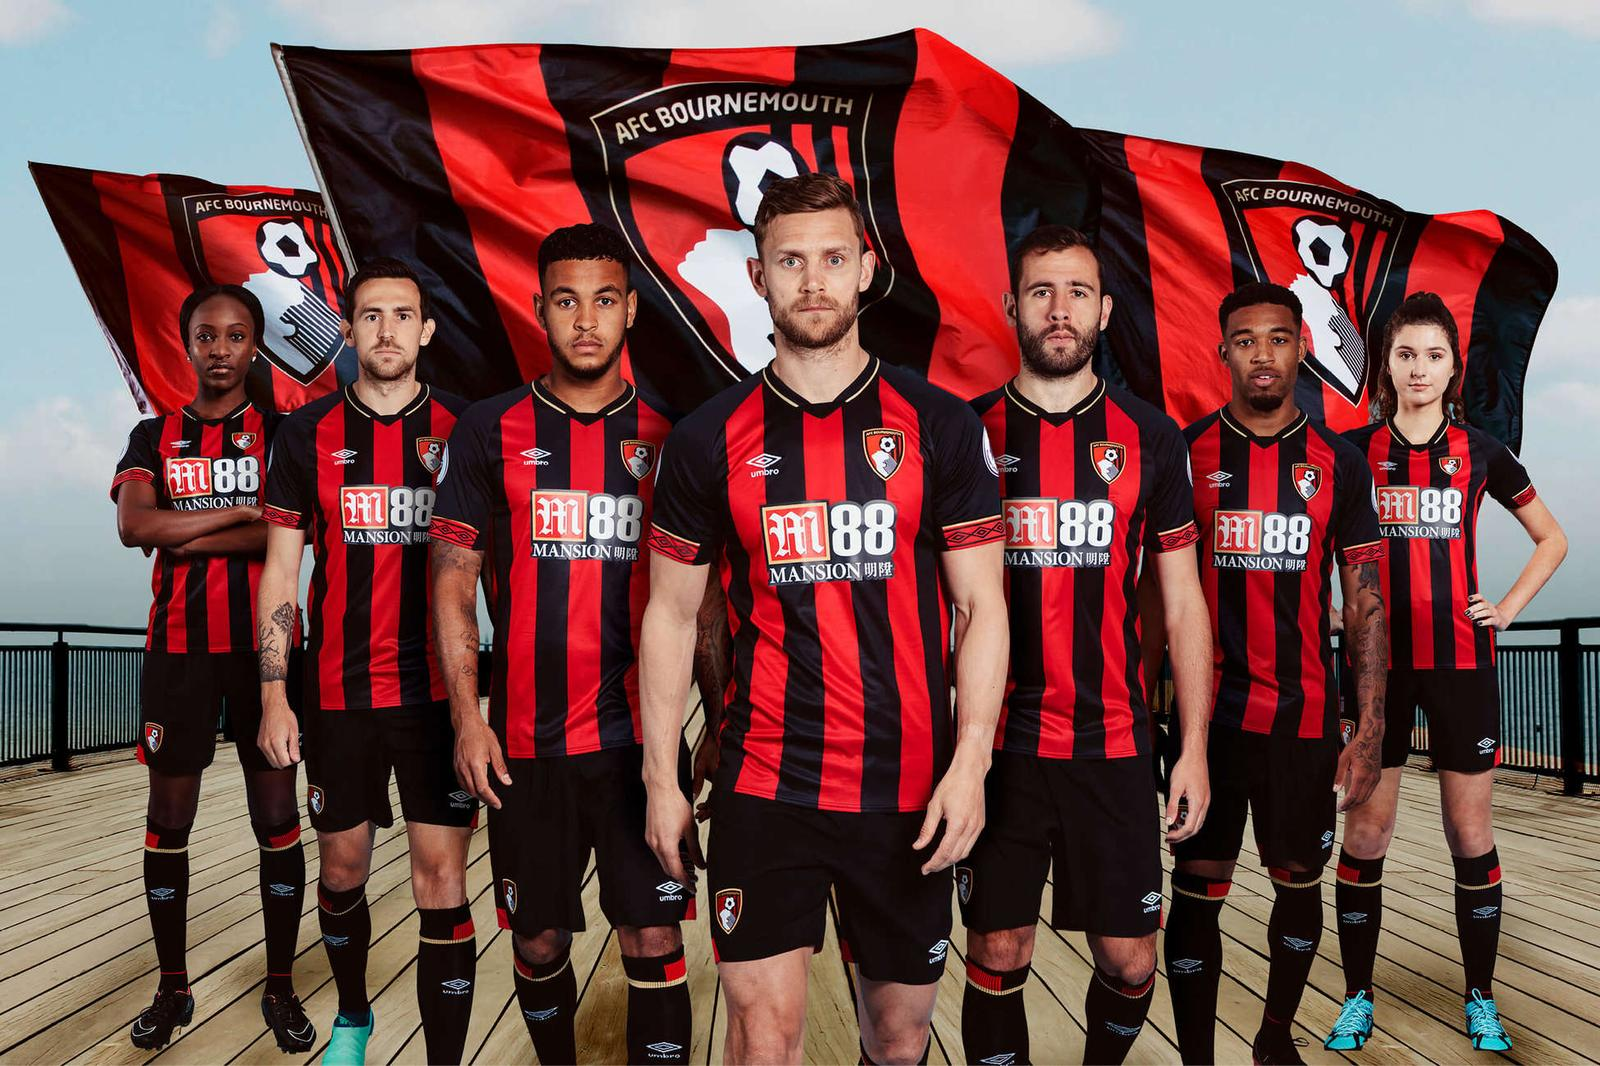 f10419acd Bournemouth 18-19 Home Kit Revealed - Footy Headlines